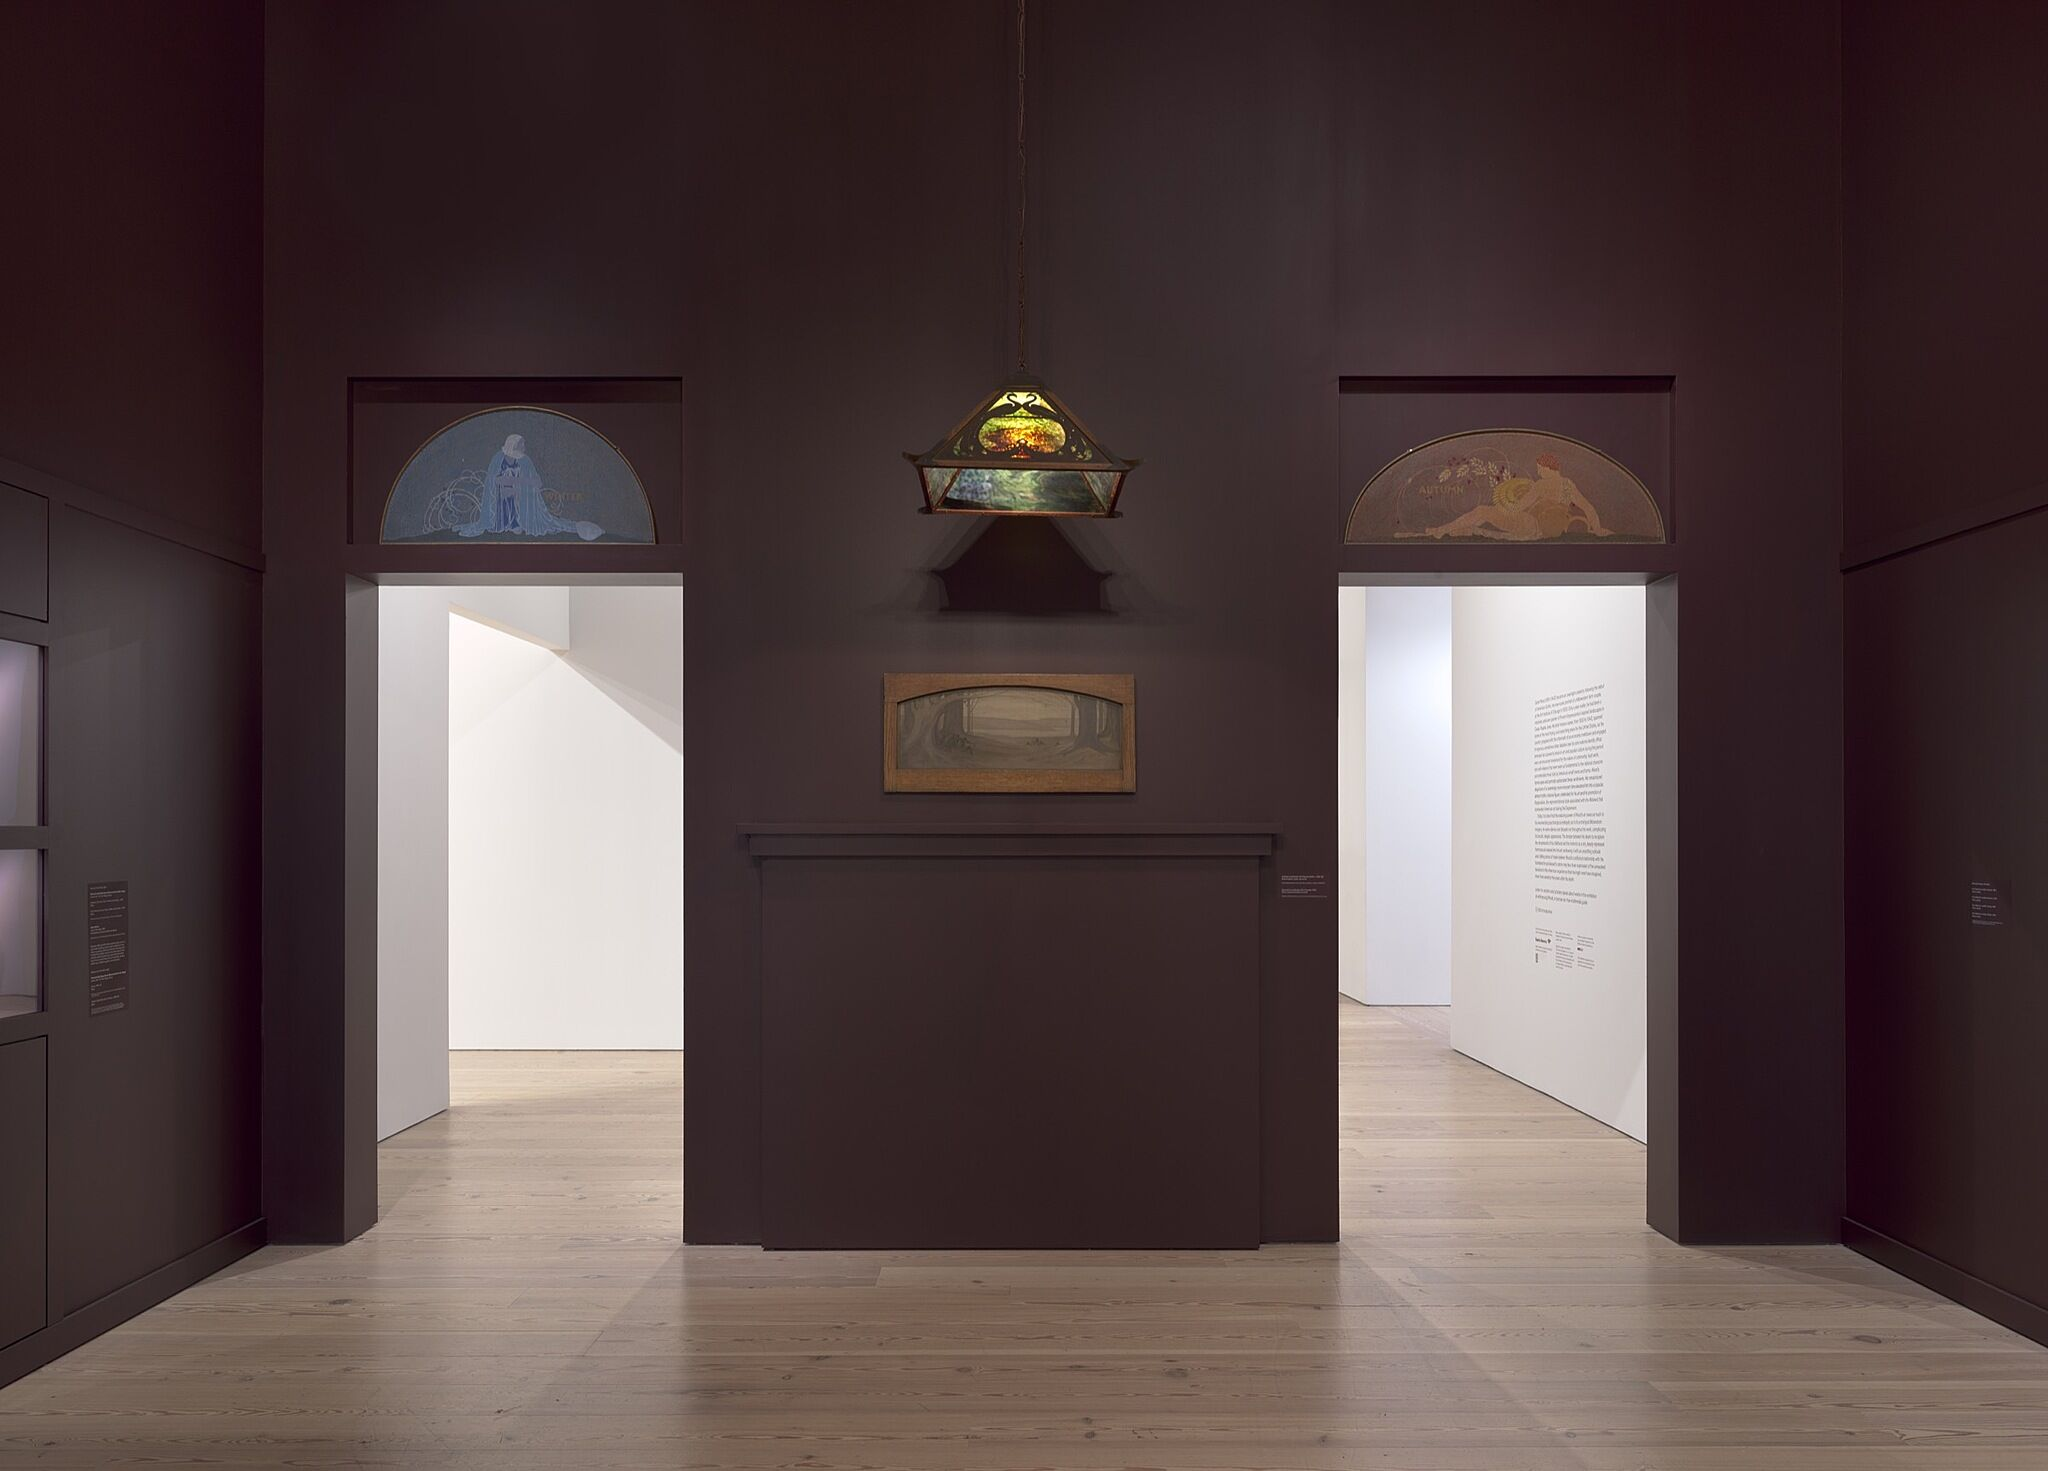 A photo of a gallery space with paintings on the wall and above the entryways.